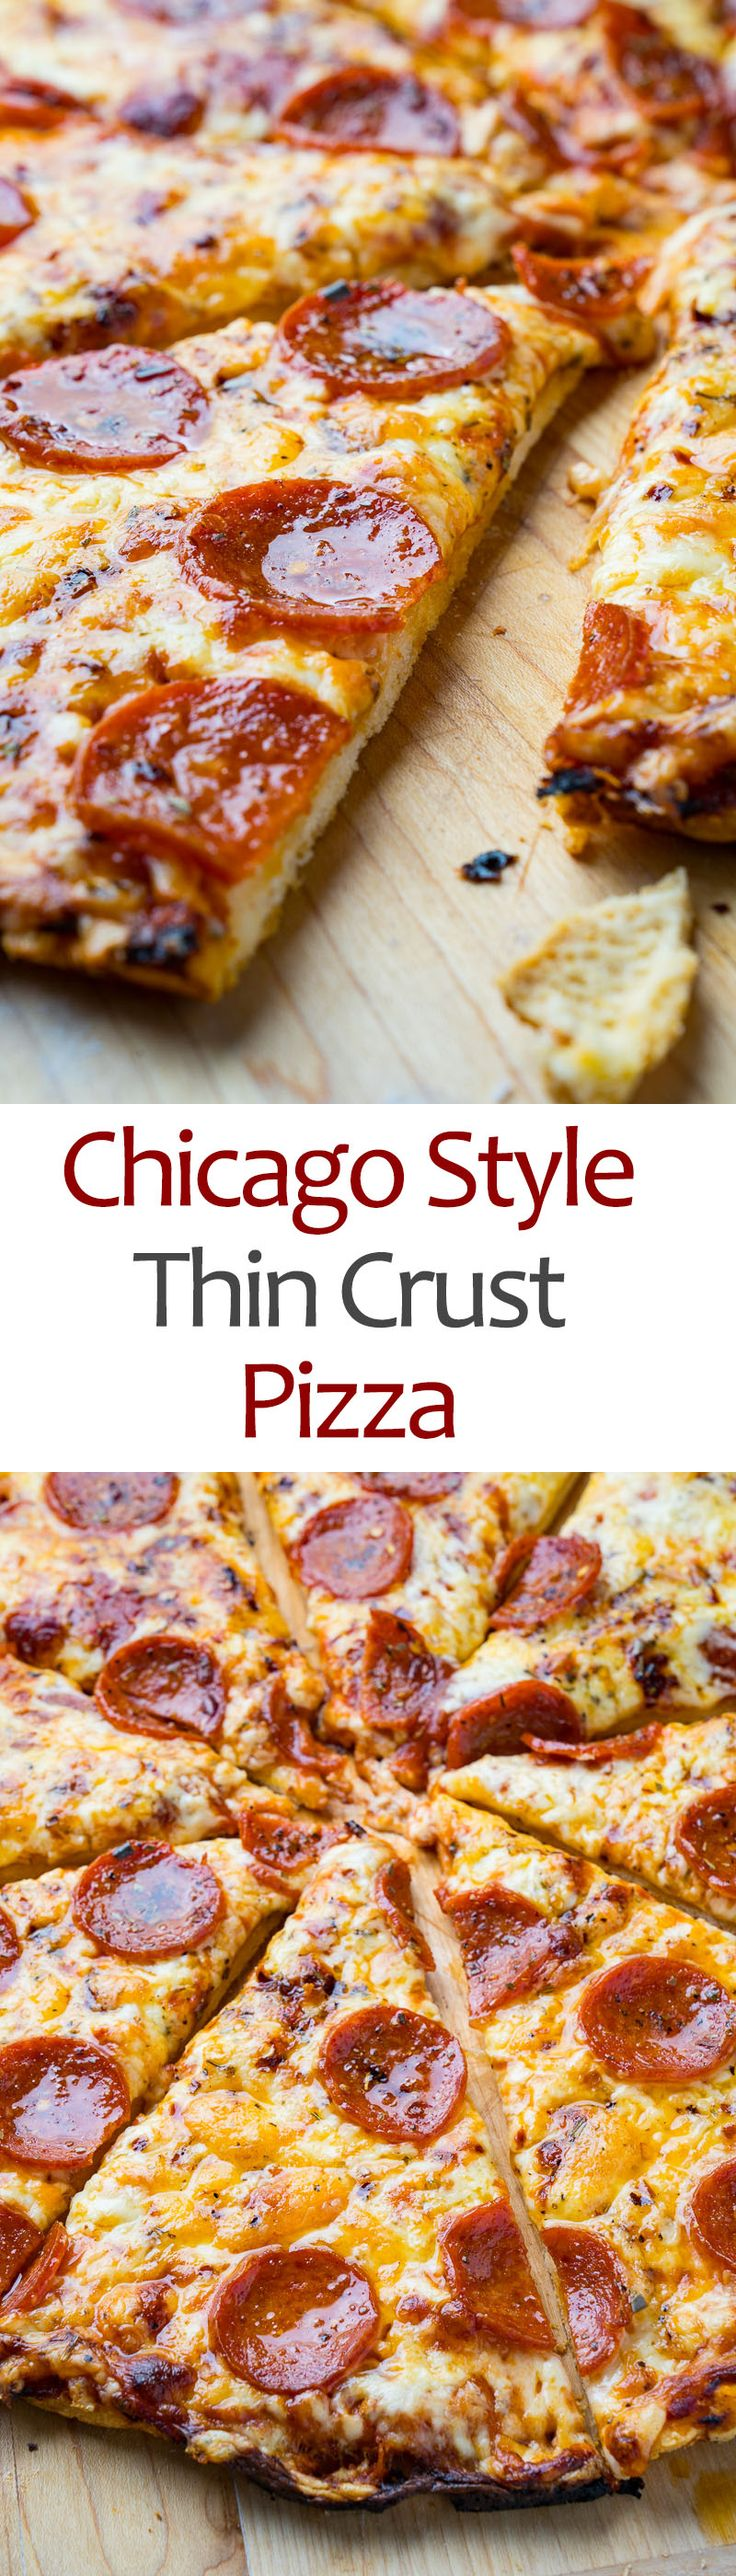 Chicago Style Thin Crust Pizza Recipe Thin crust pizza